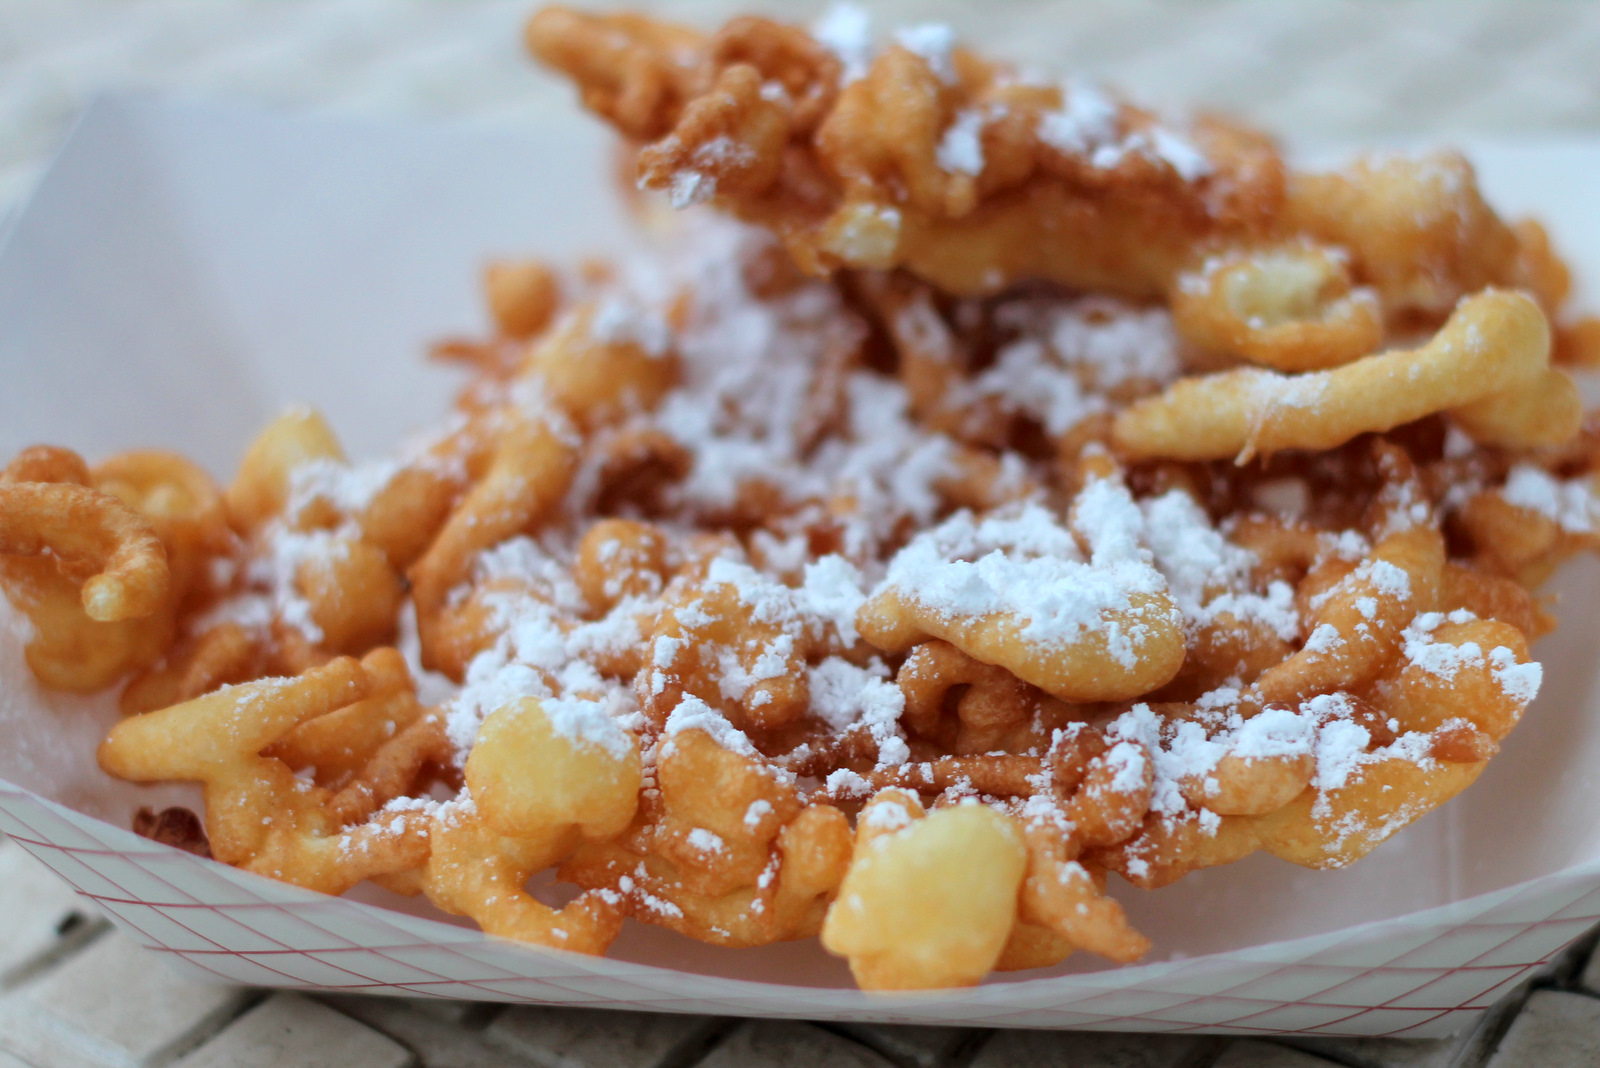 And the Funnel Cakes were LEGIT. Like, get 'em at the fair in all ...